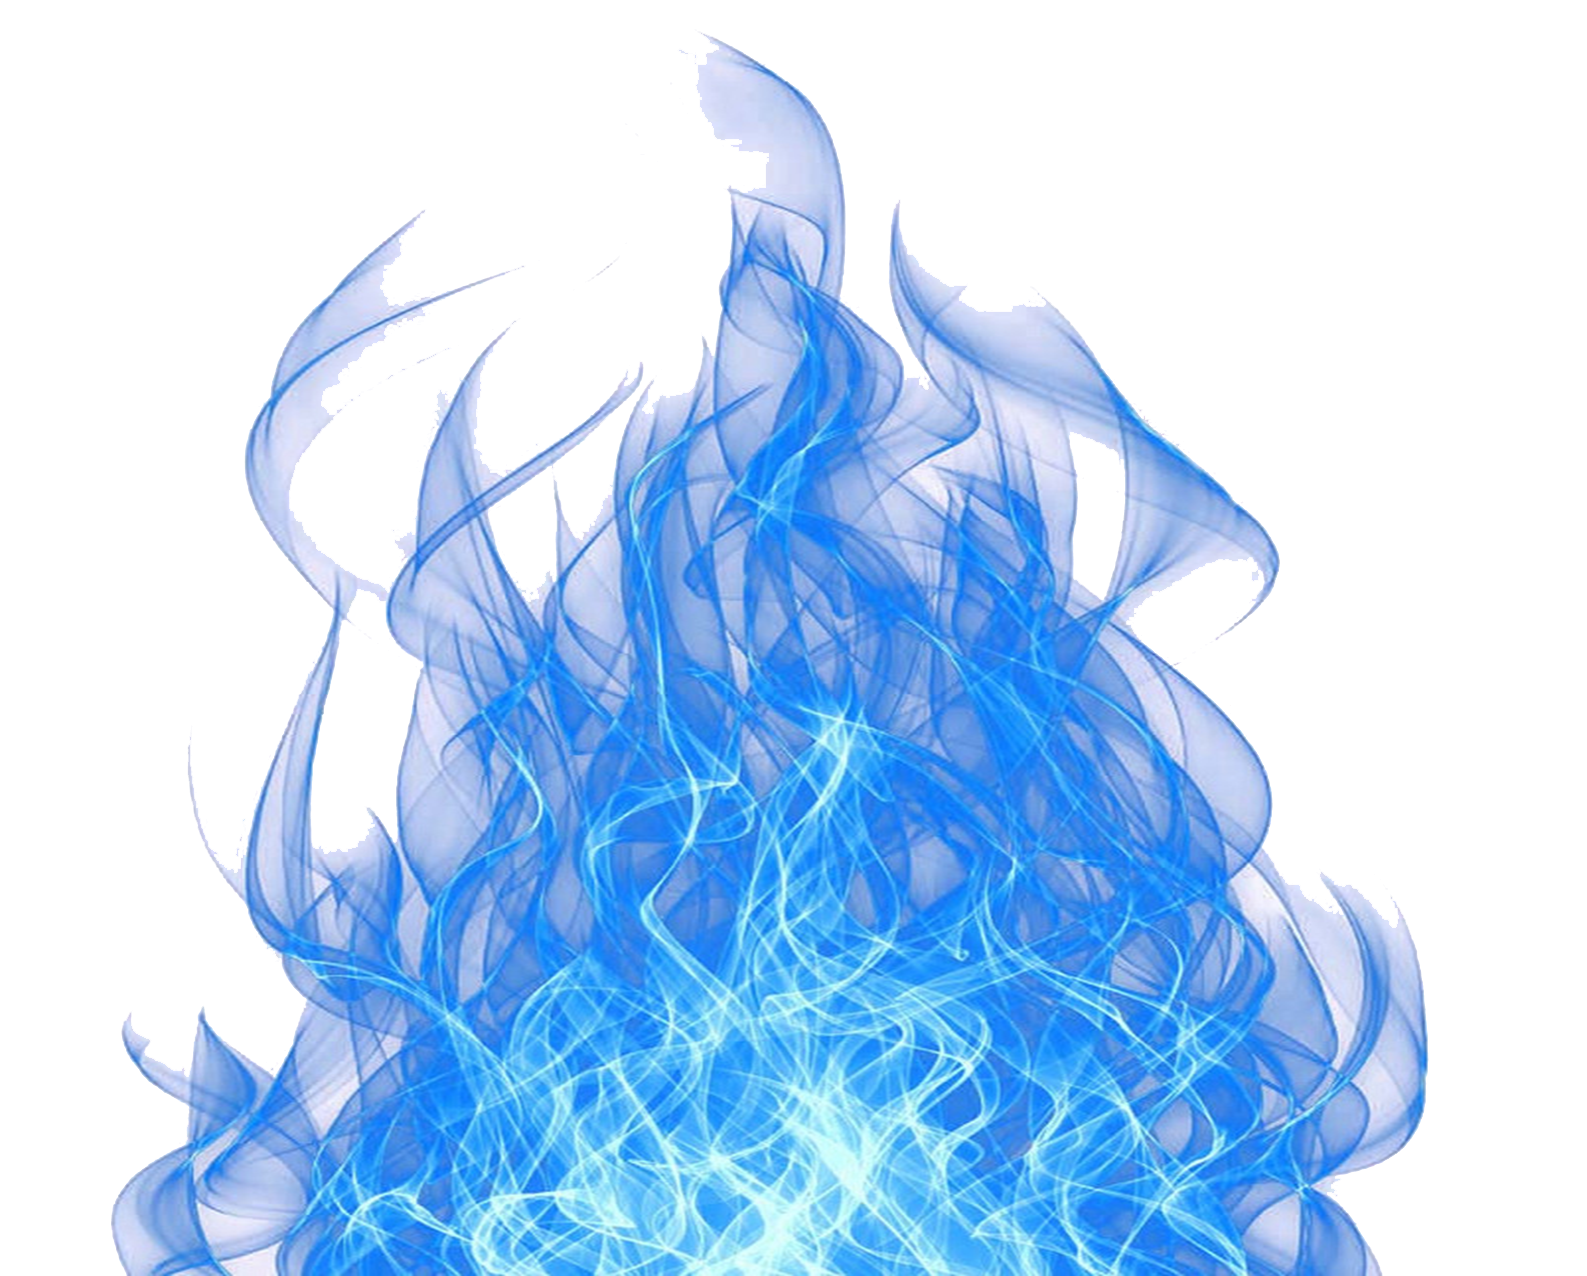 Blue Fire Flame Creative Effects Blue Flame Png Transparent Clipart Image And Psd File For Free Download Blue Flames Fire Image Image